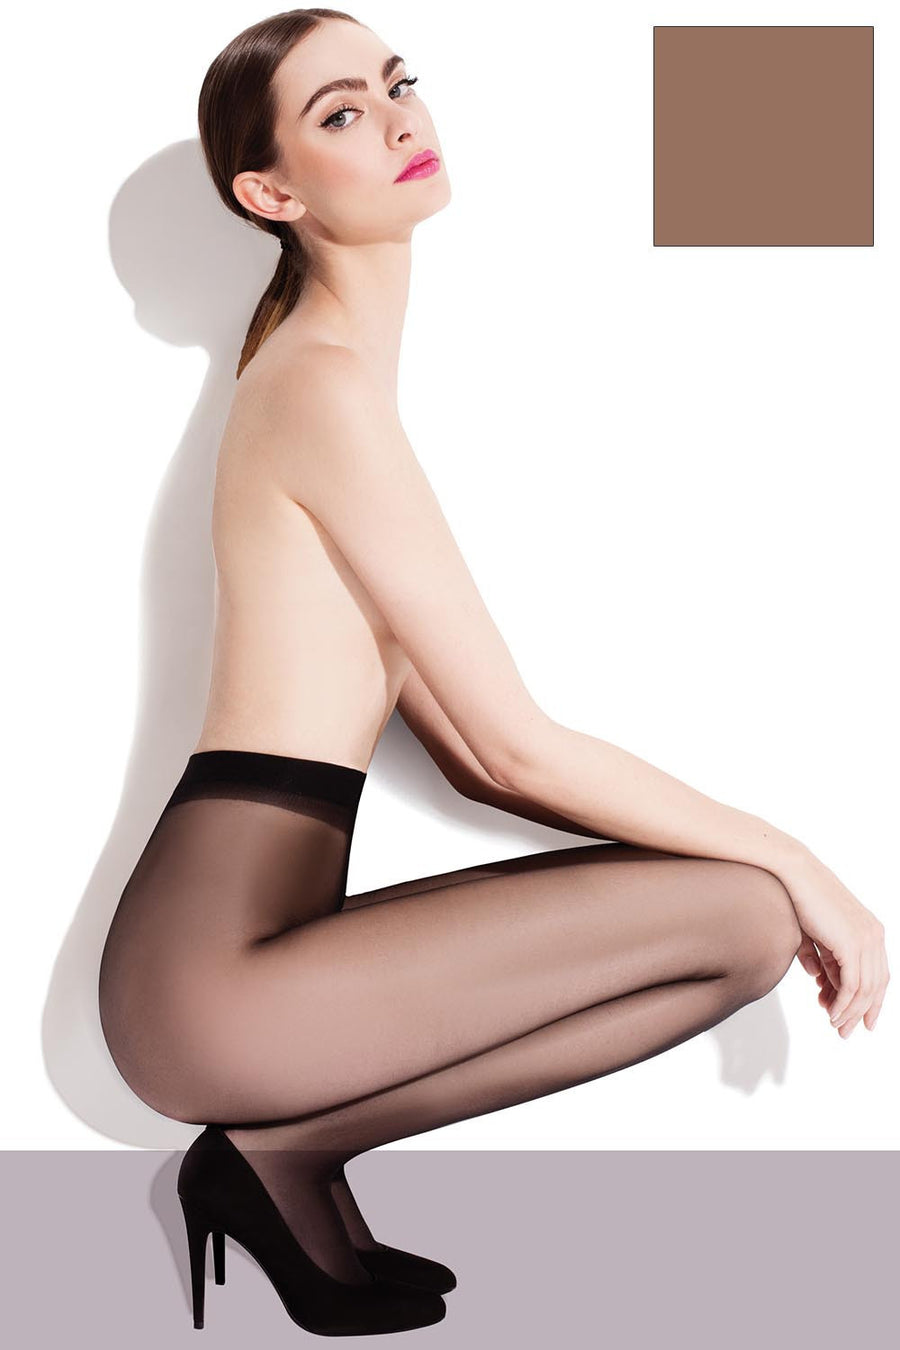 Tights 71118 Fiore-Hosiery & Legwear, Stockings and Tights for Women-Fiore-TRESFANCY